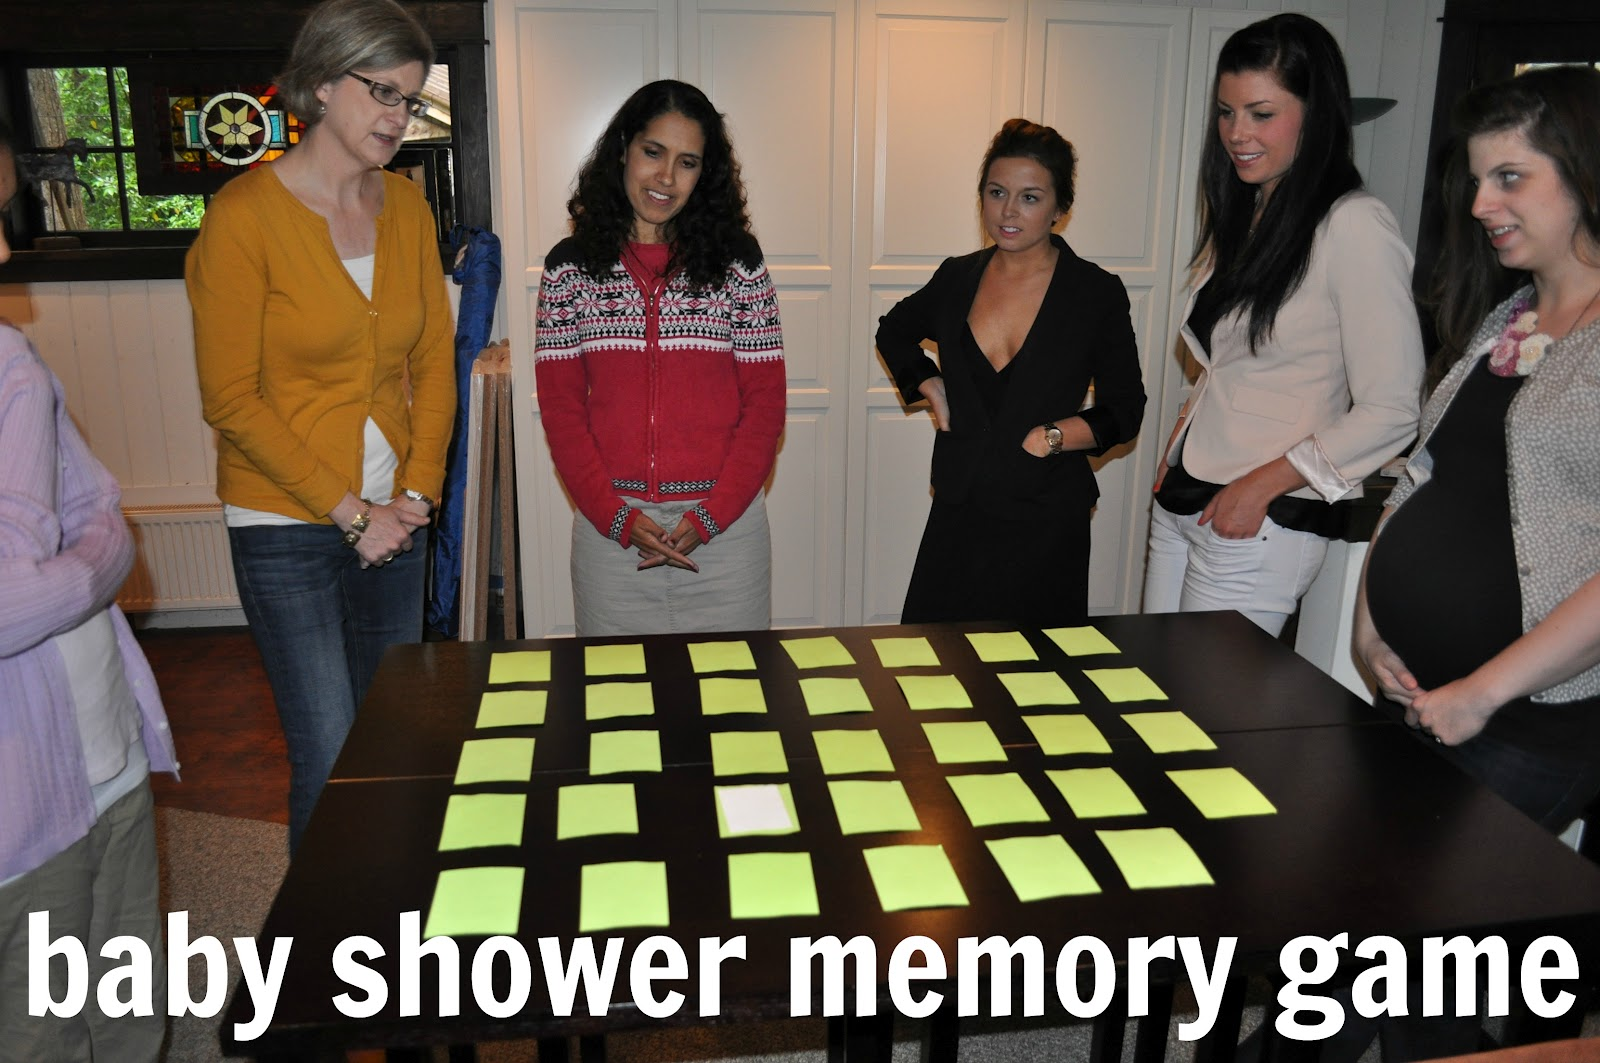 baby shower memory game that mama gretchen